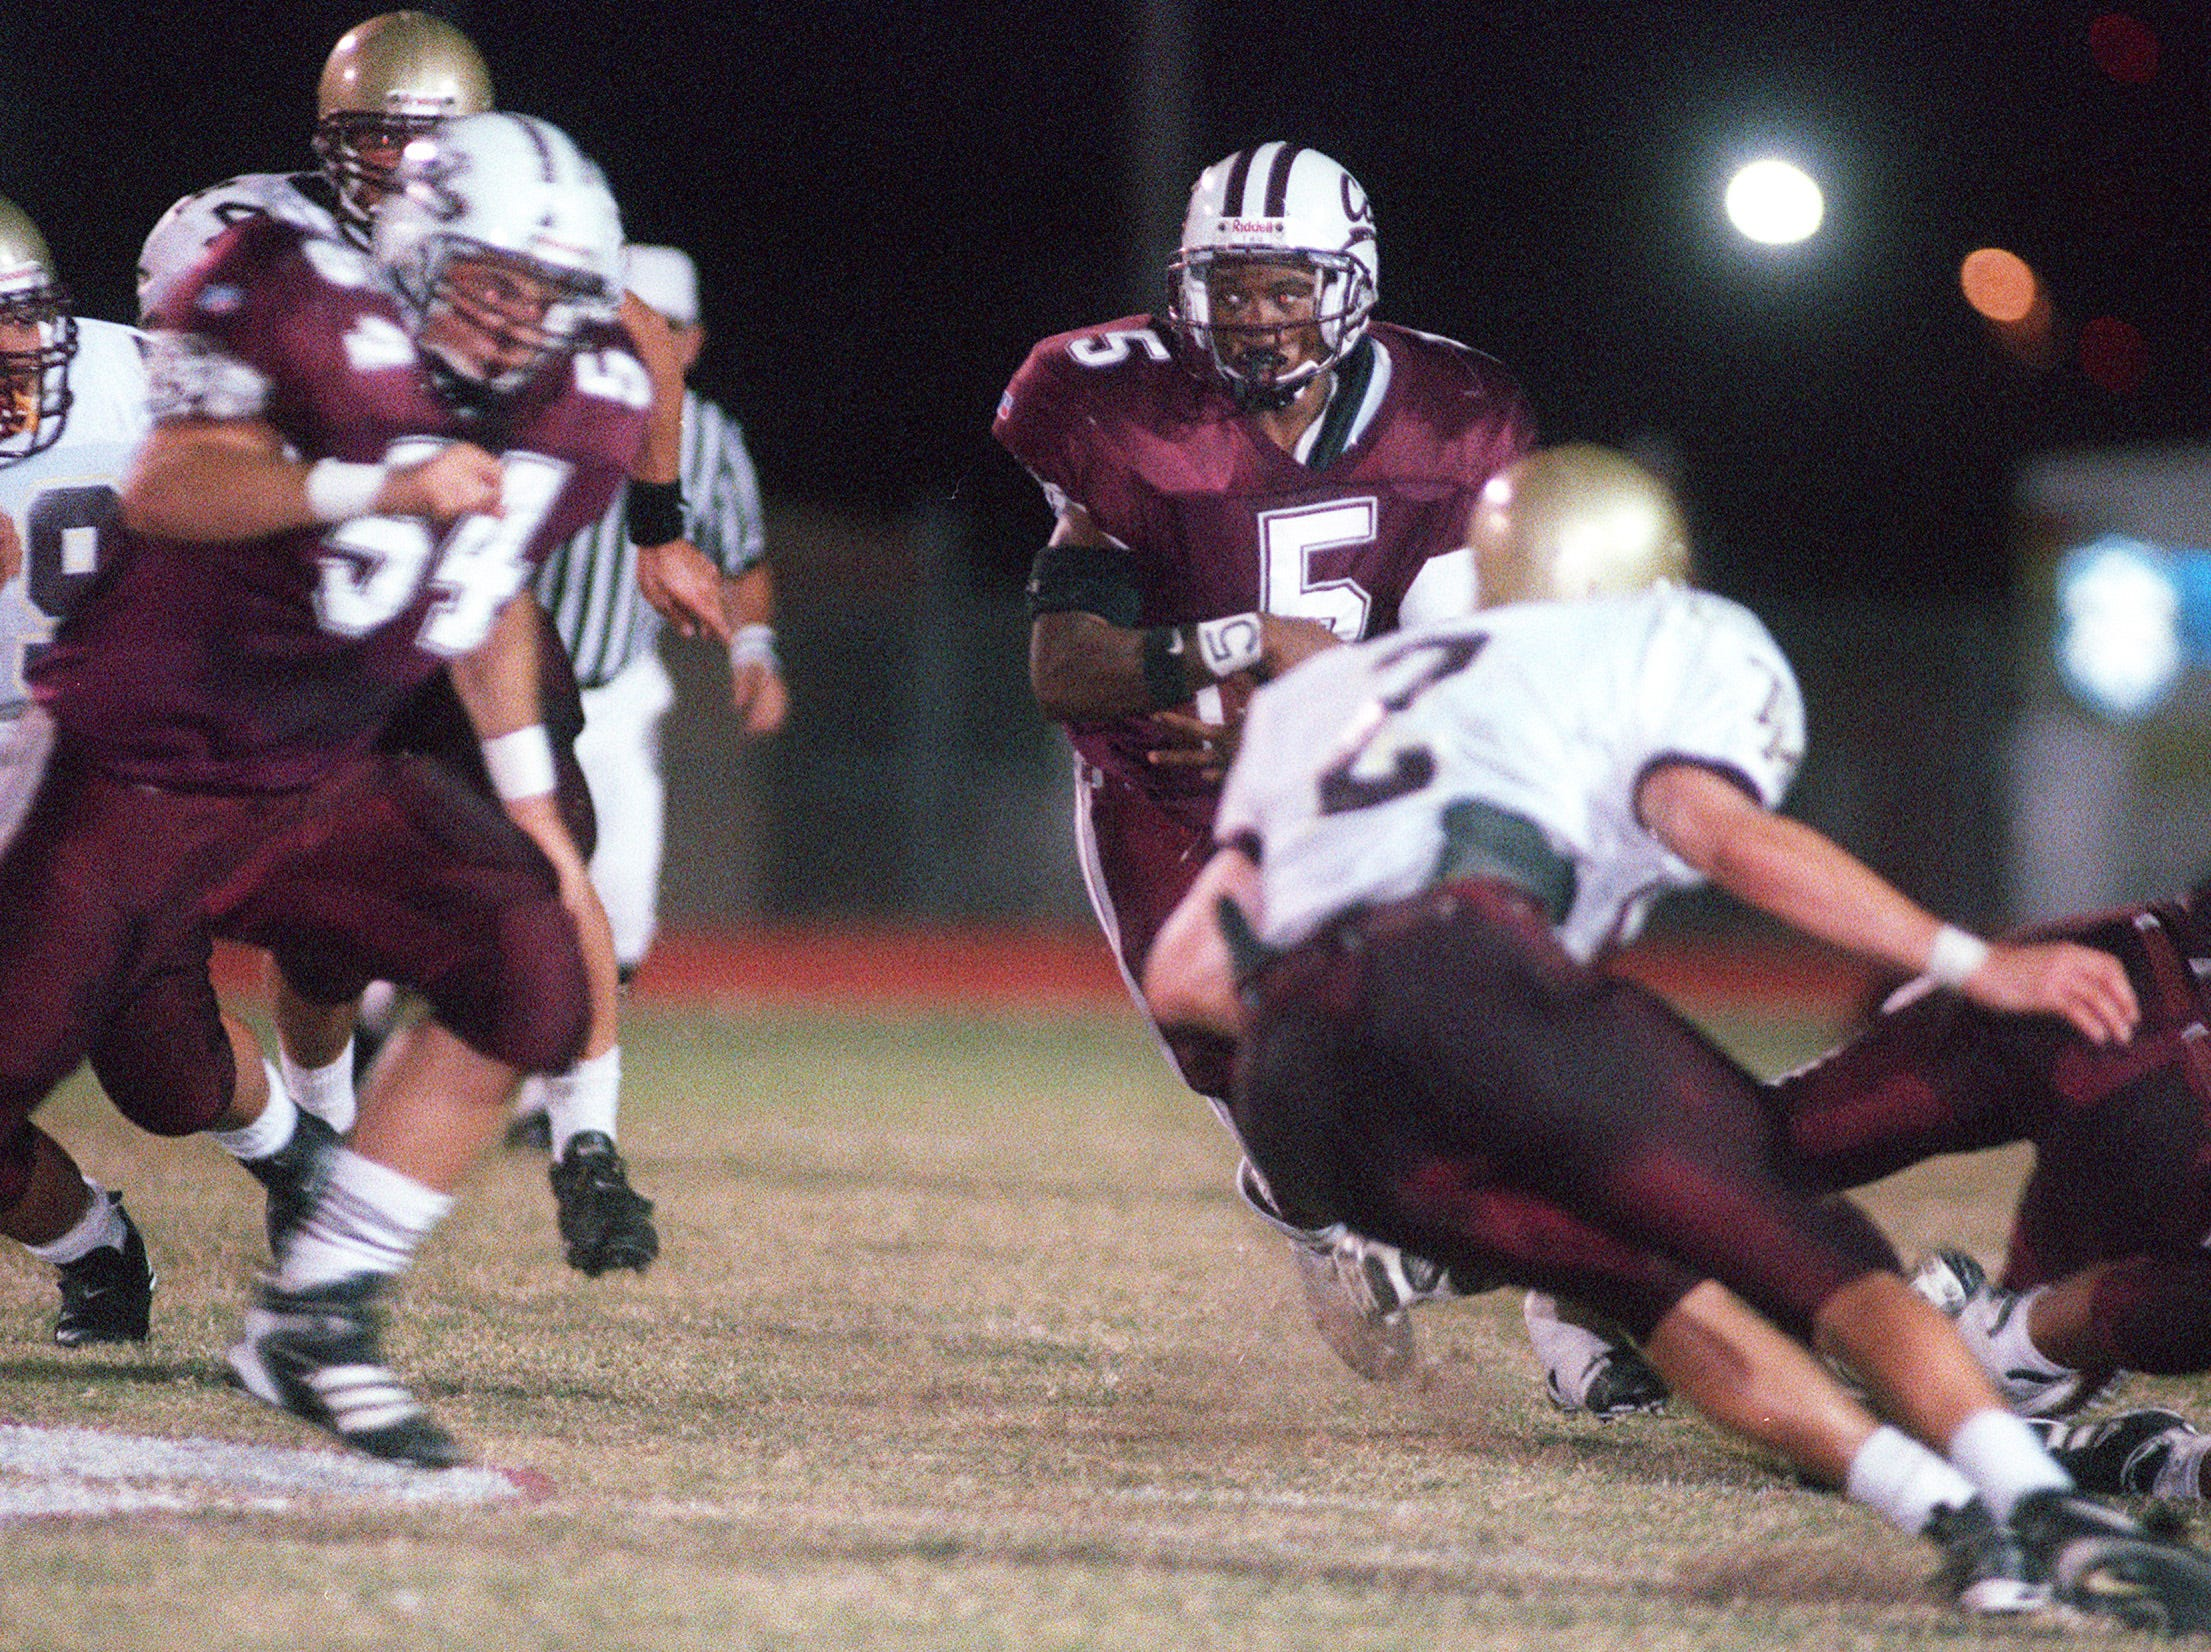 Calallen's Francis Garner #54 (left) charges T-M's Travis Hardcastle #2 (right) to allow room for Calallen's Victor Price to run during Friday night football game action at Calallen. (photo by michelle christenson 10/16/98)